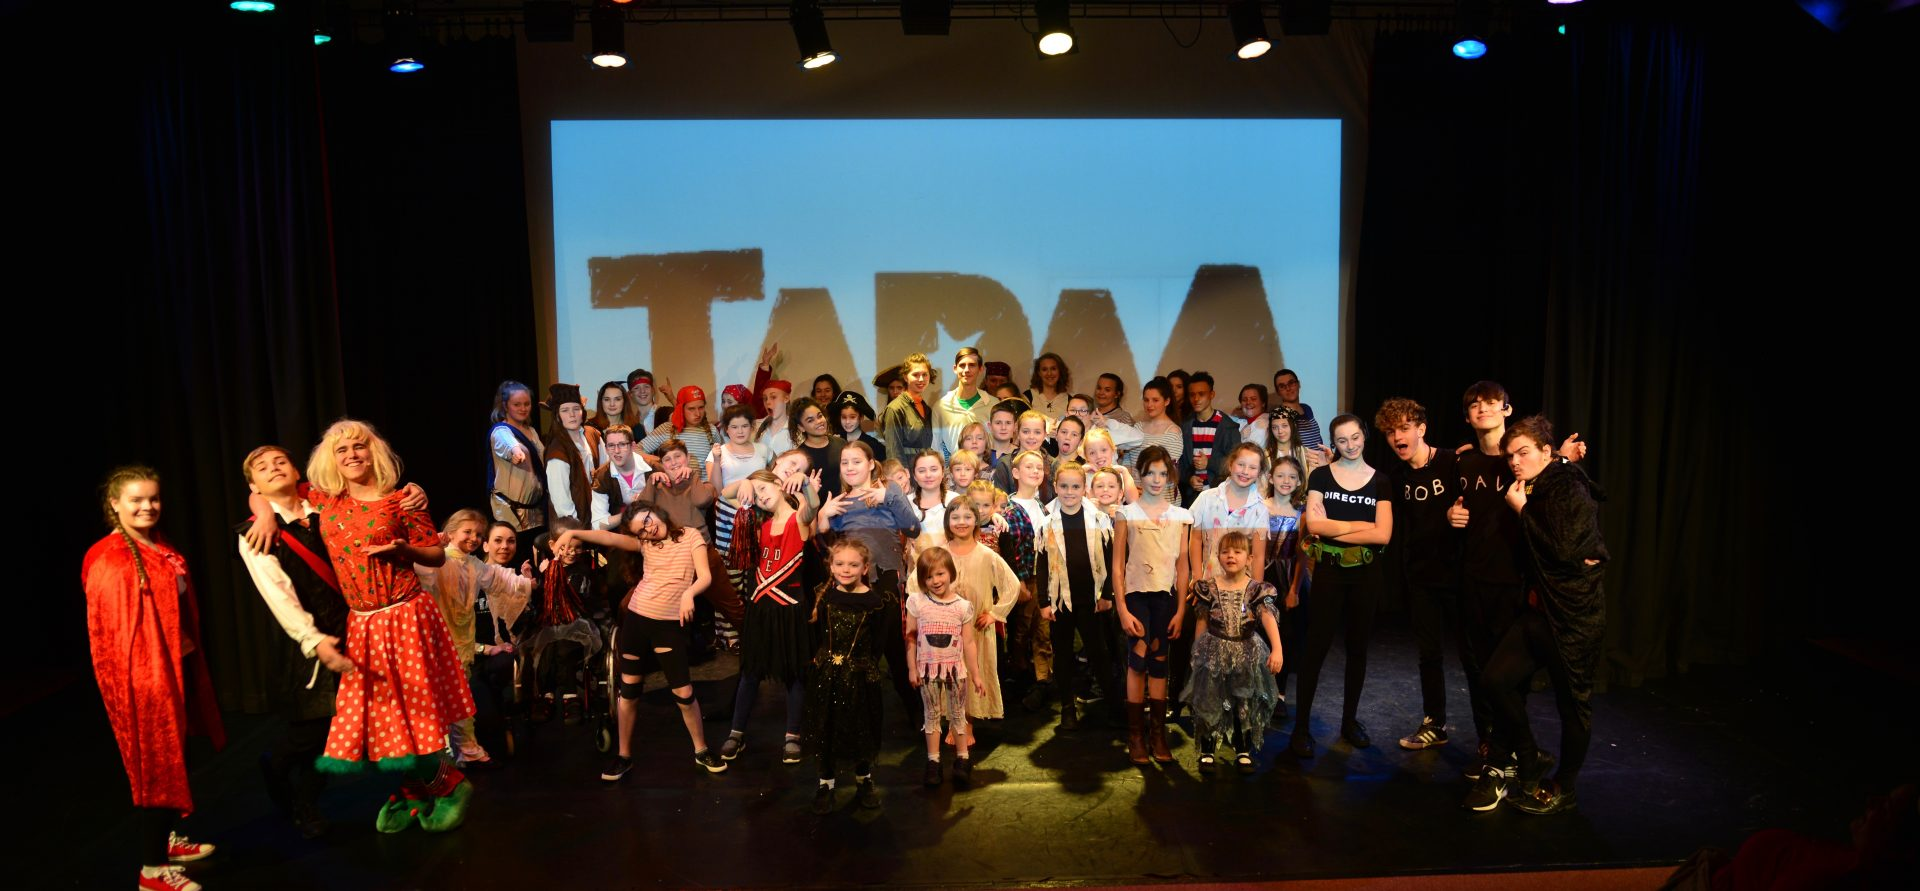 Performing Arts Classes for 2-18 Year Olds